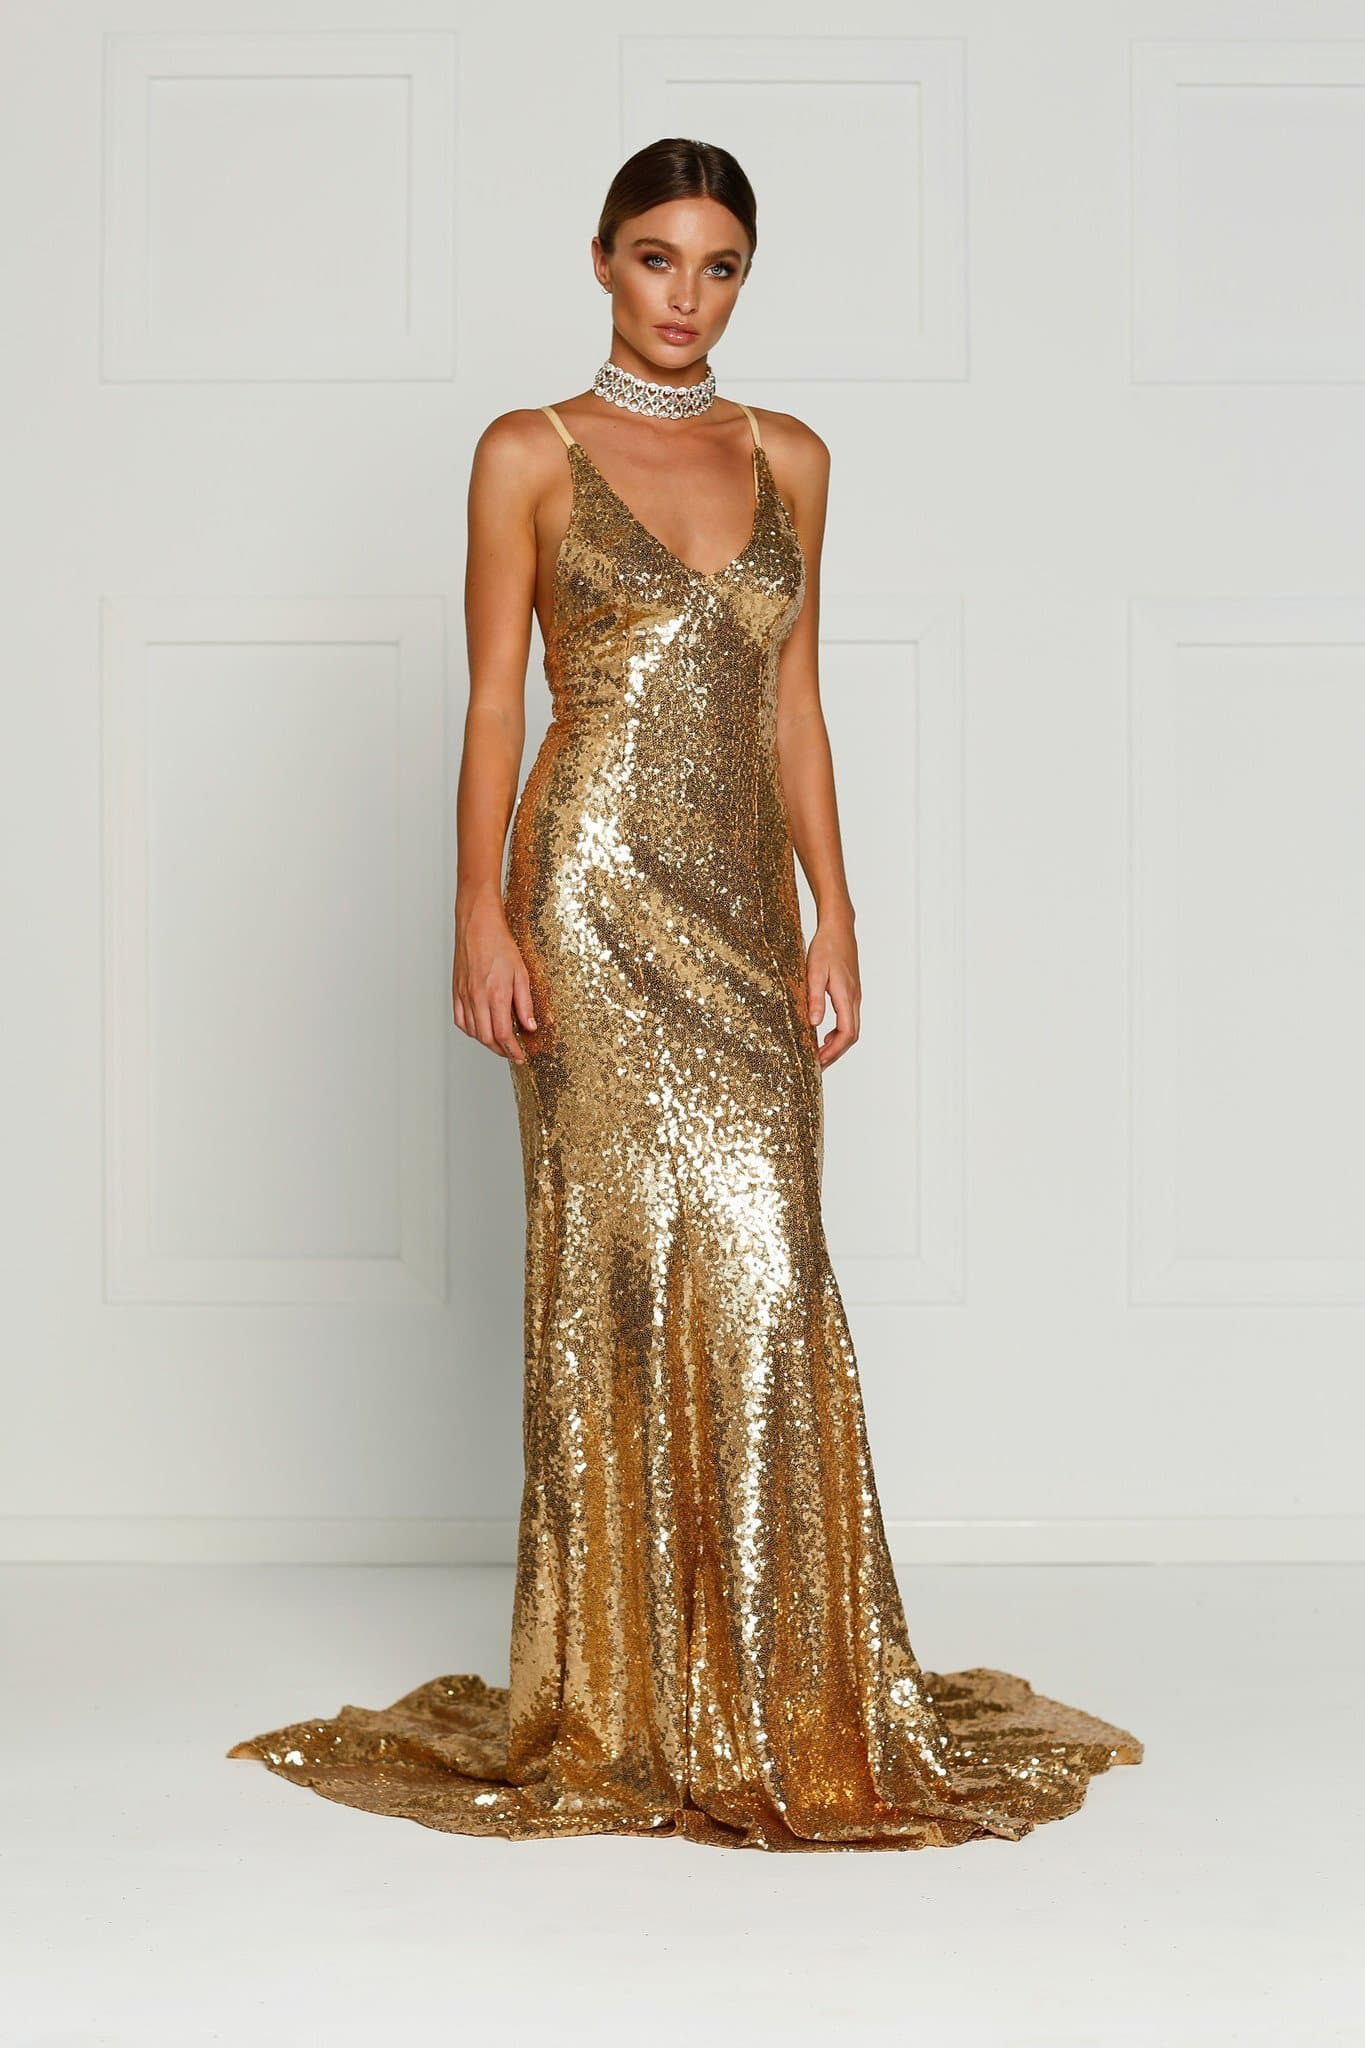 A&N Kendall - Gold Sequin Dress with V Neck and Criss Cross Back